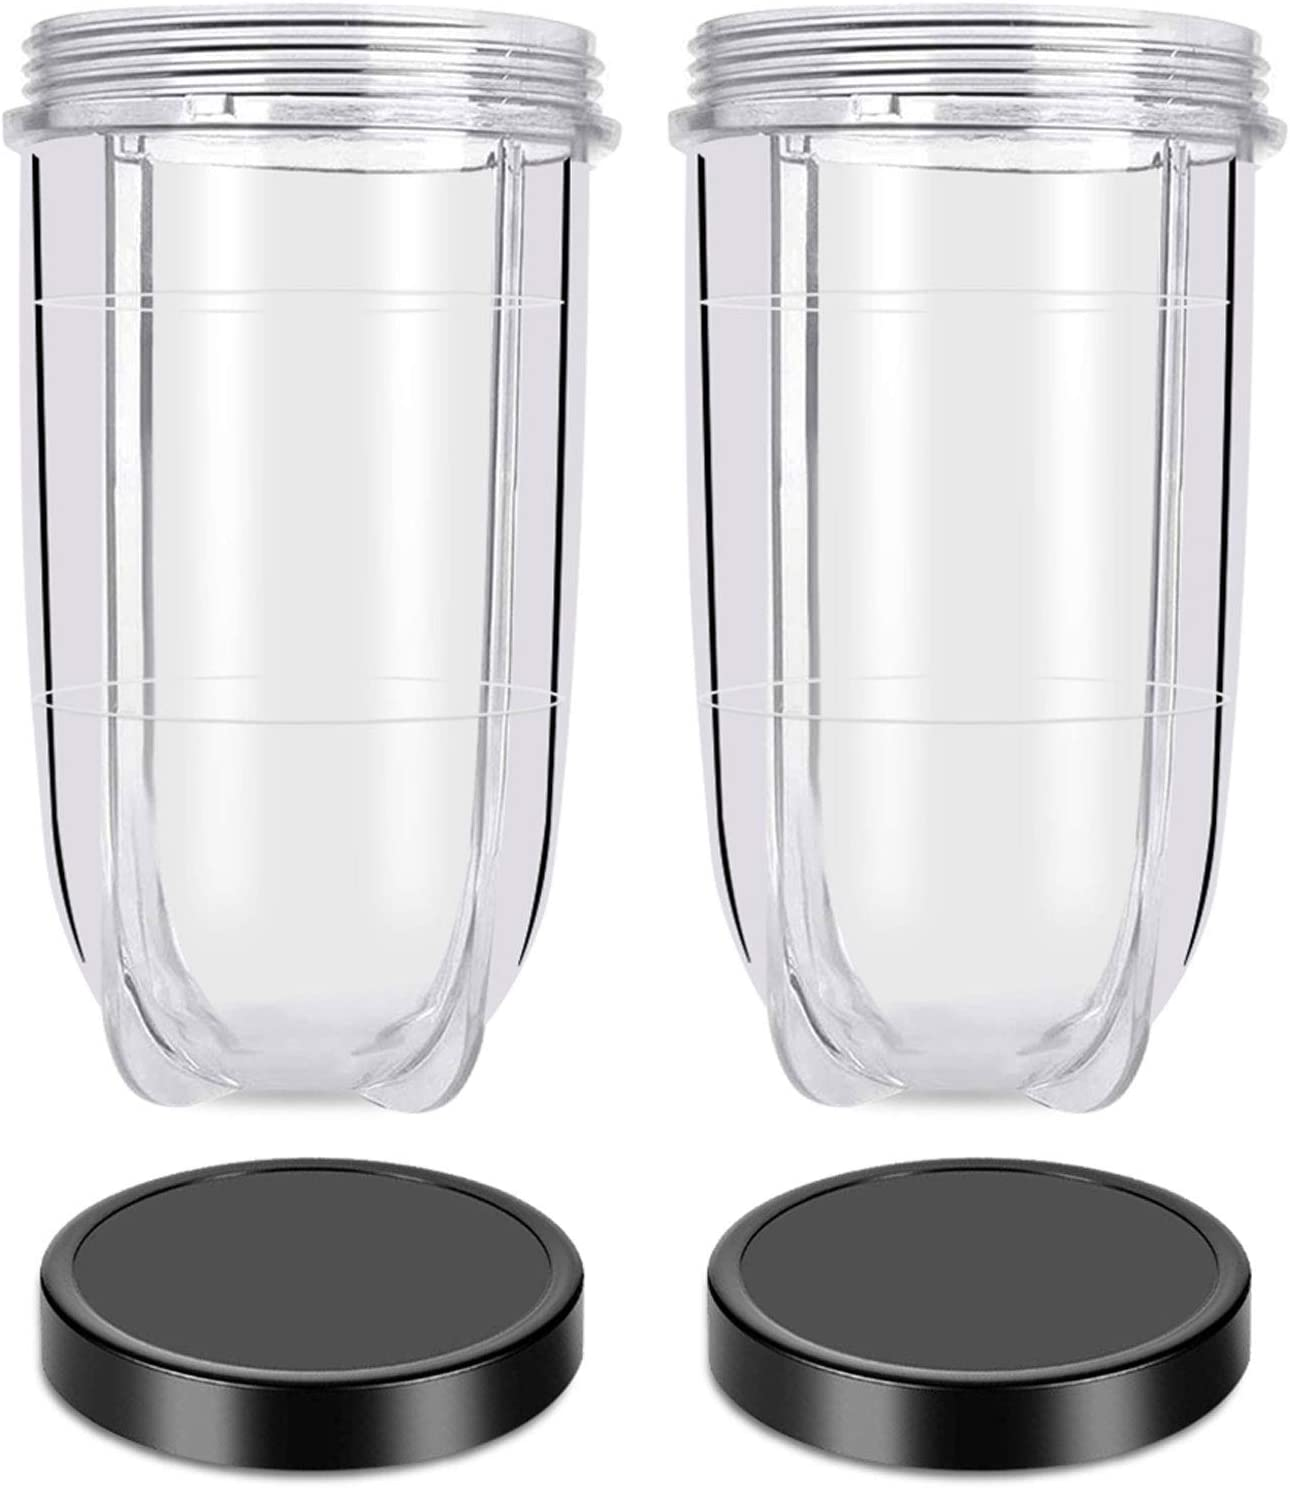 Replacement 16 Ounce Tall Jar Cups with Black Jar Lids, Blender Replacement Parts, Replacement Tall Jar Cups Compatible with Magic Bullet Blender Juicer Mixer 250W MB1001 Accessories (2 Pack)